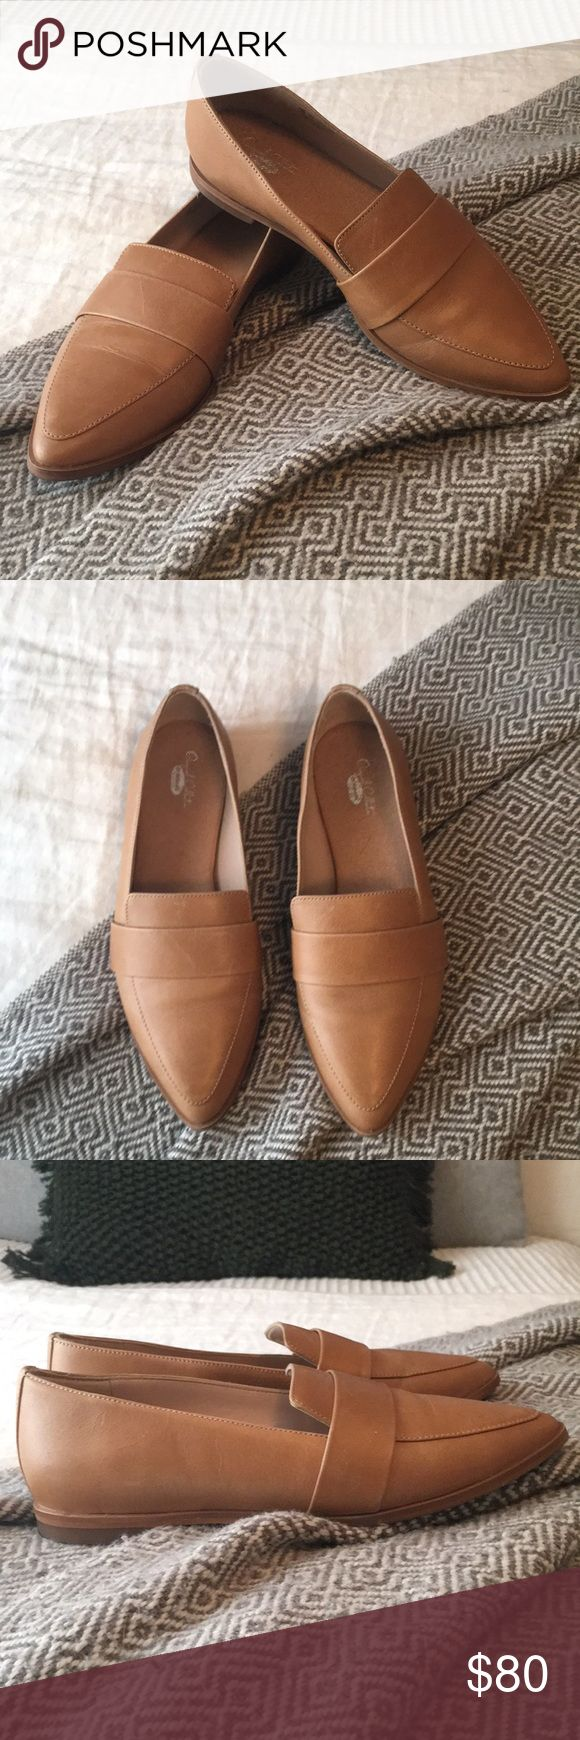 Dr. Scholl's Ashah Loafer Worn Twice Original Collection Cushioned Insole (very comfortable) Dr. Scholl's Shoes Flats & Loafers